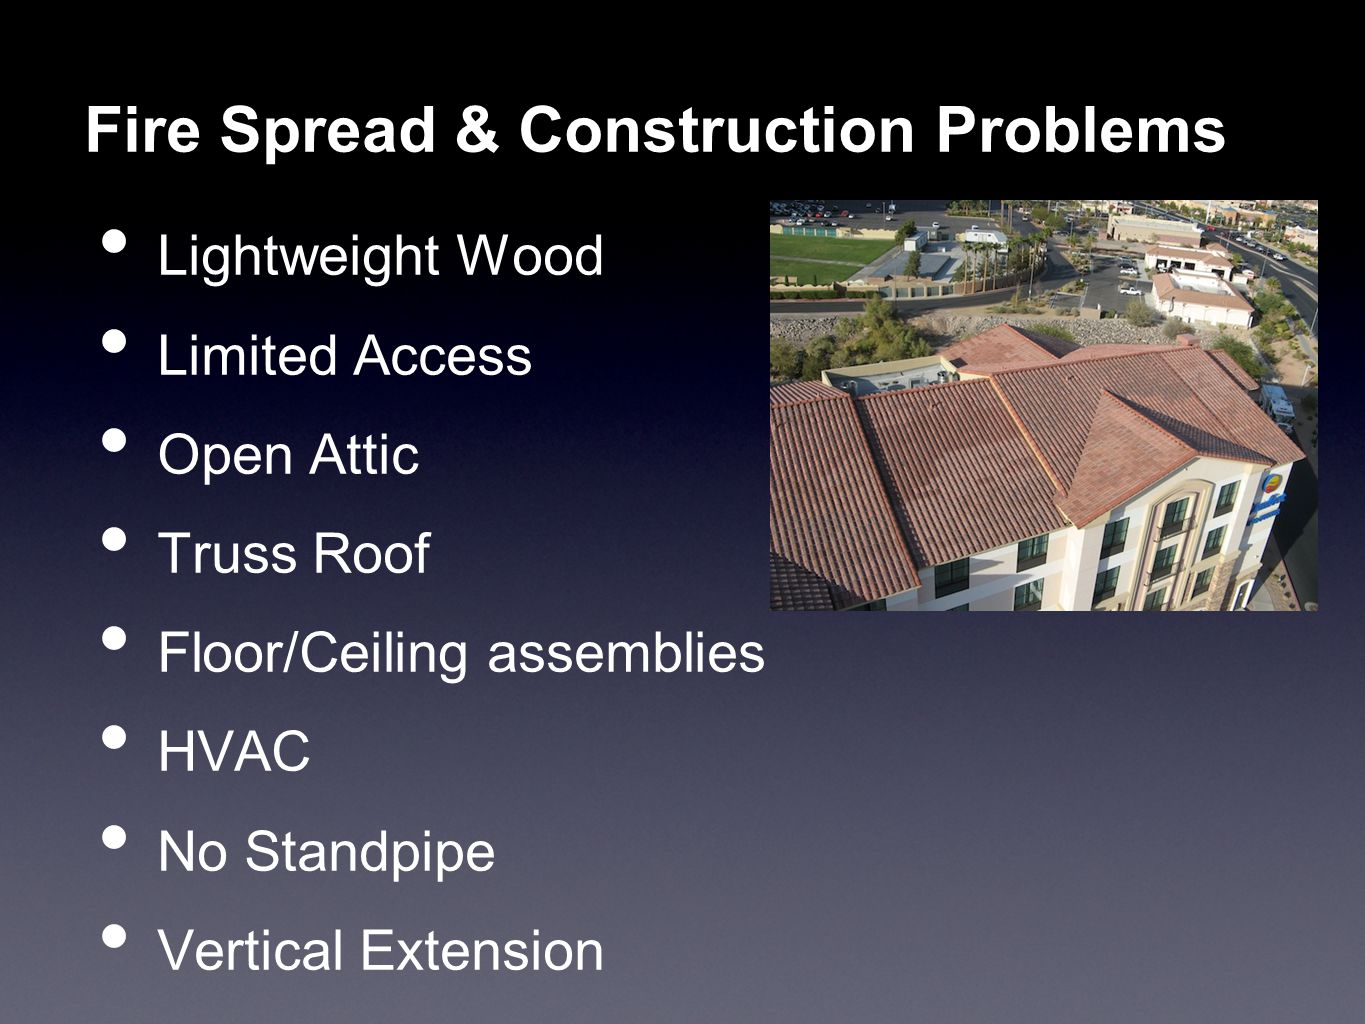 Fire Spread & Construction Problems